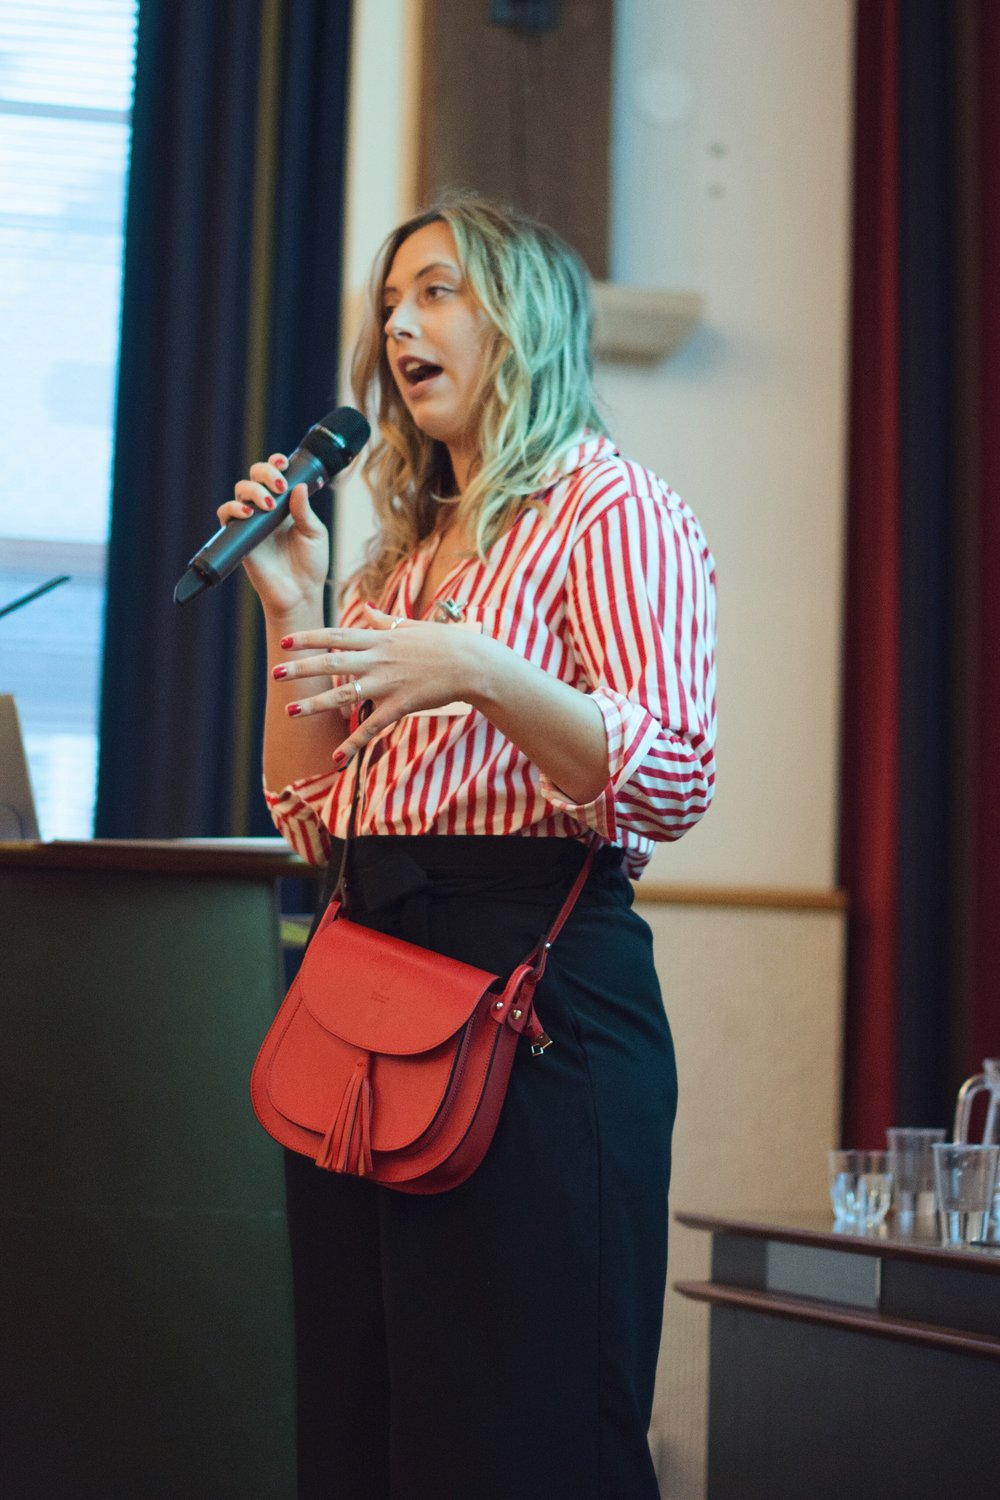 IANN Presents: How to Develop a Powerful Personal Brand - Aleksandra Dragozet Speaker